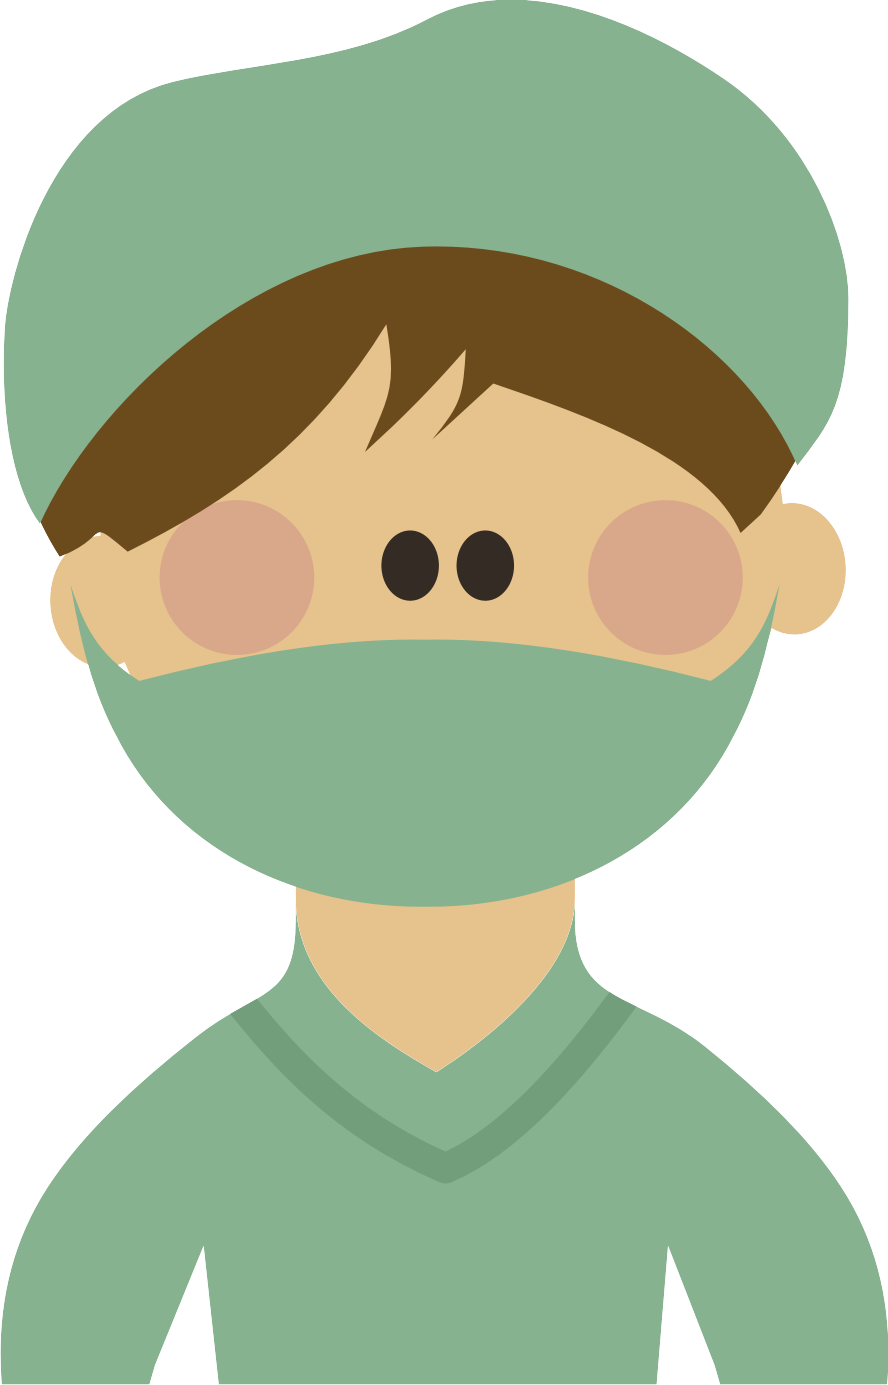 doctor clipart character